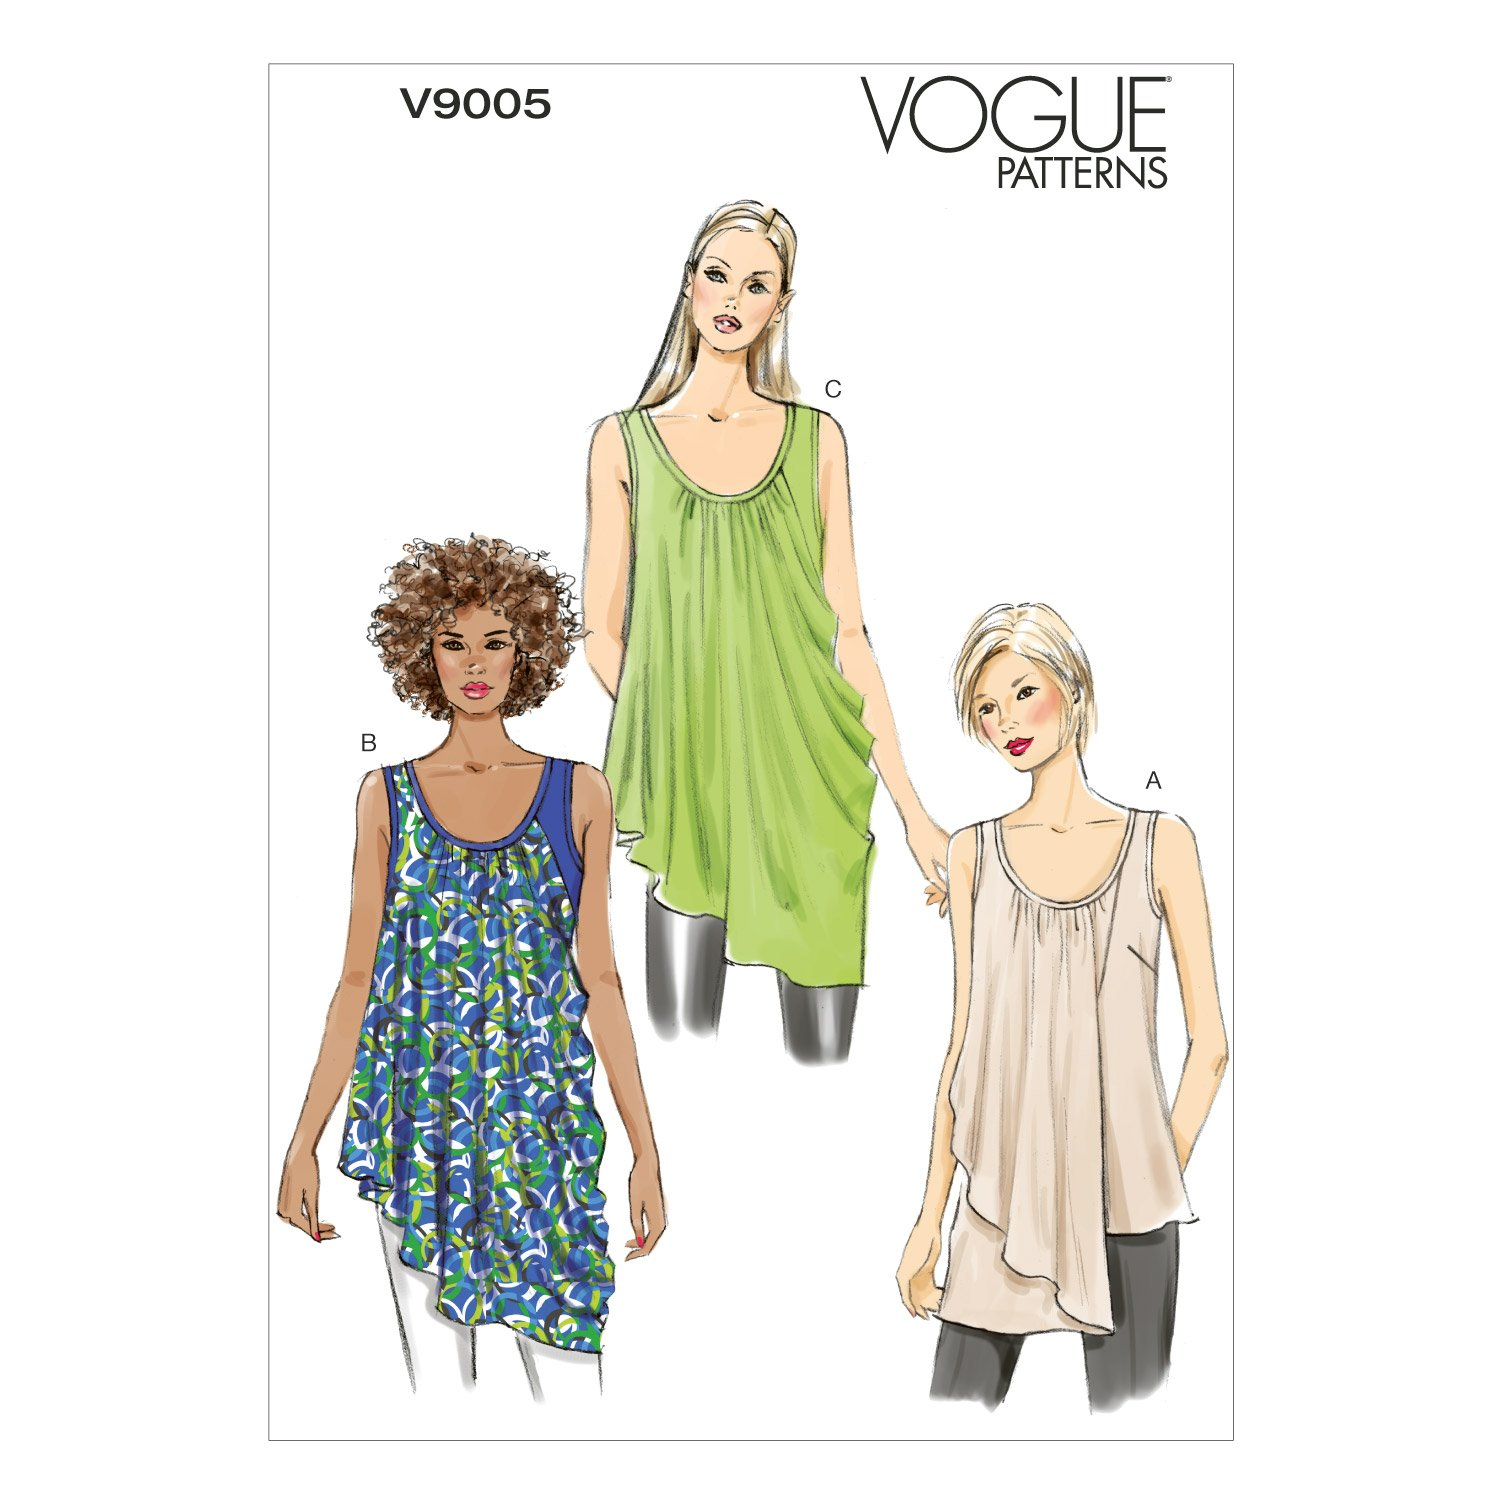 Vogue Patterns V9005 Misses' Top Sewing Template, Size Y (XSM-SML-MED) by Vogue Patterns   B00JQARMVU